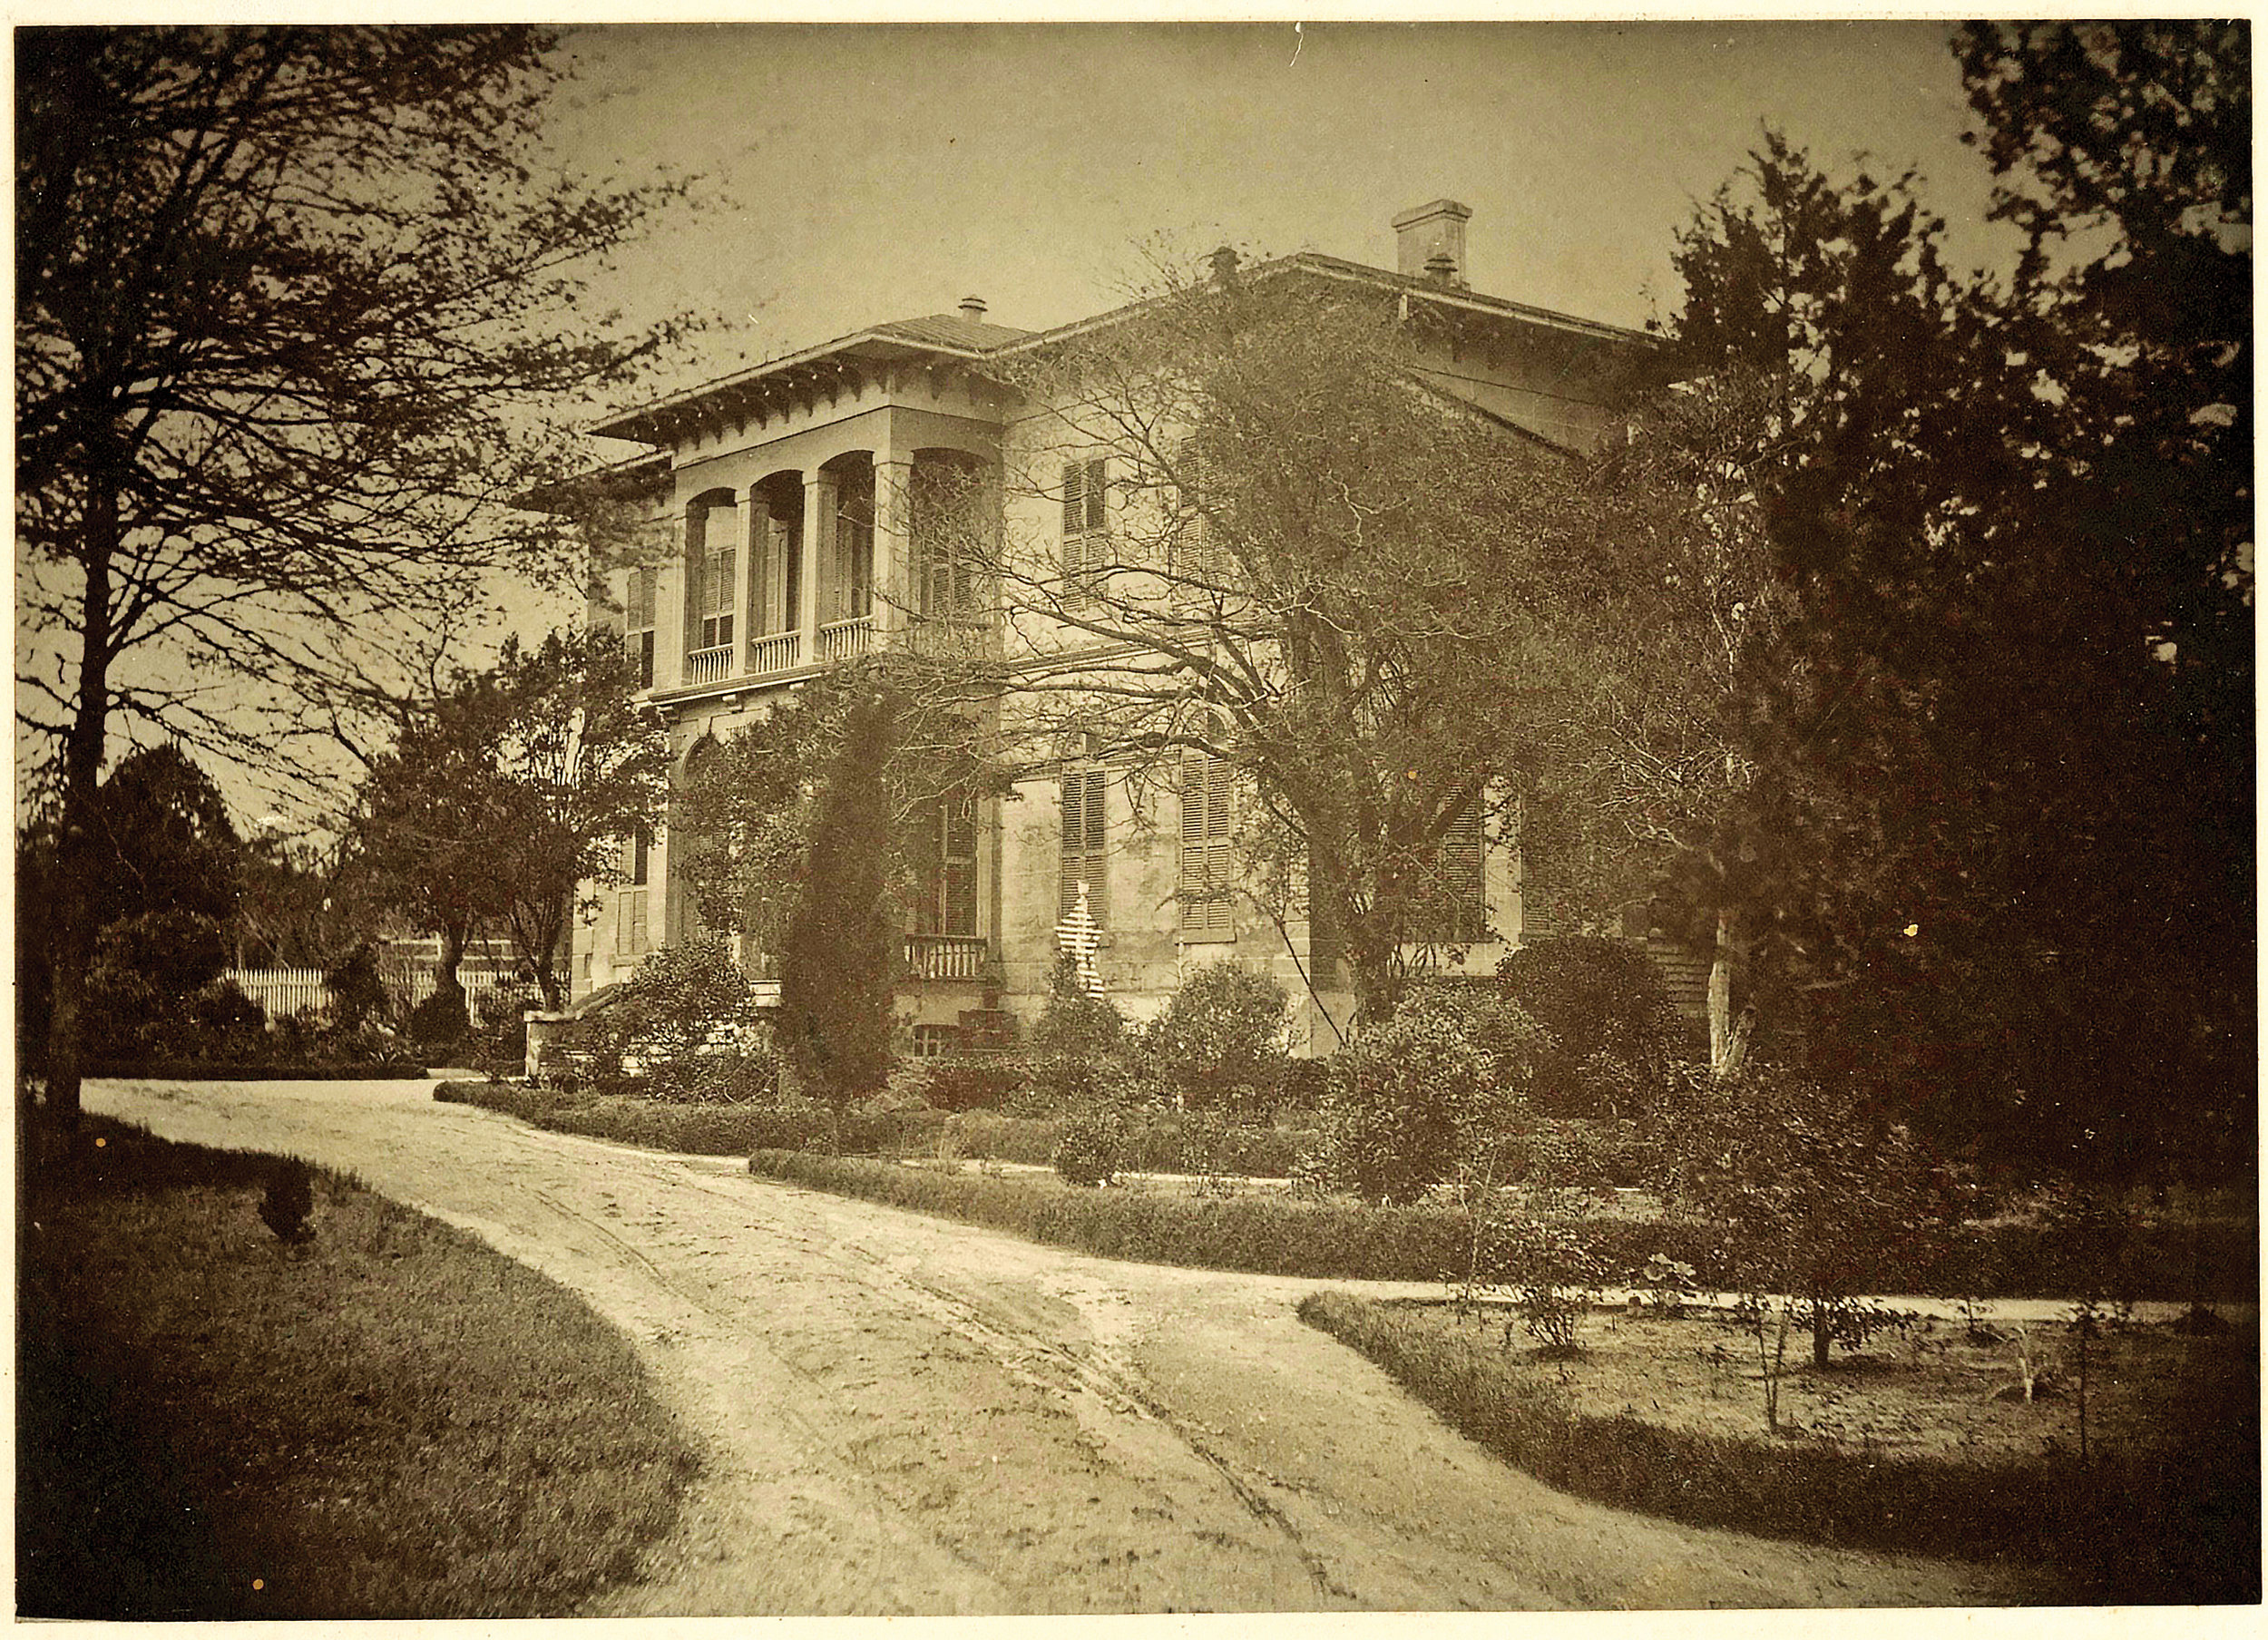 The four room home of Rev. Lovick Pierce after the 1855 renvoation by William W. Garrard. The home once stood in the wooded area where Hilton Avenue runs into Wynnton Road.